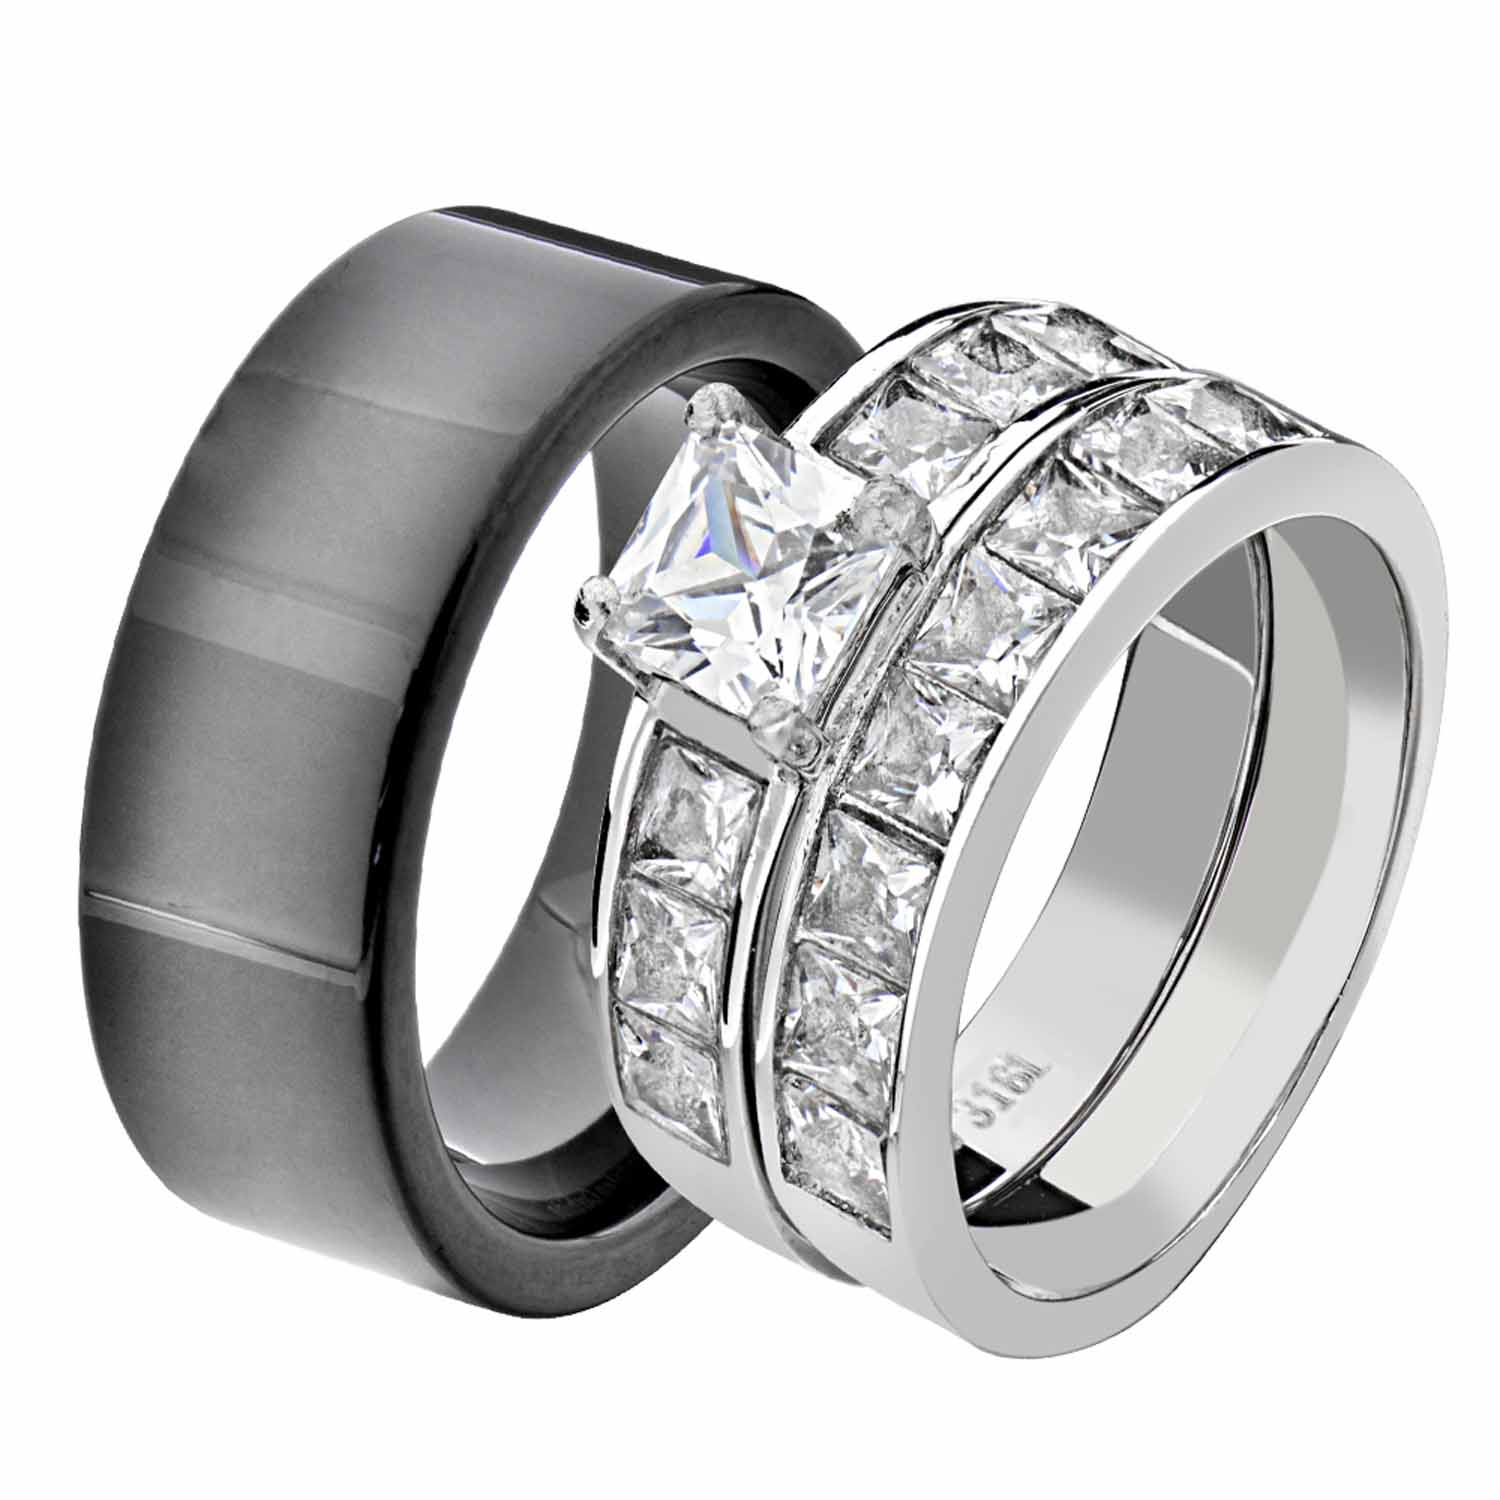 Details About His Hers Stainless Steel Princess Cz Wedding Ring Sets Tungsten Men Band Iw: Tungsten Wedding Band Sets For Women At Websimilar.org